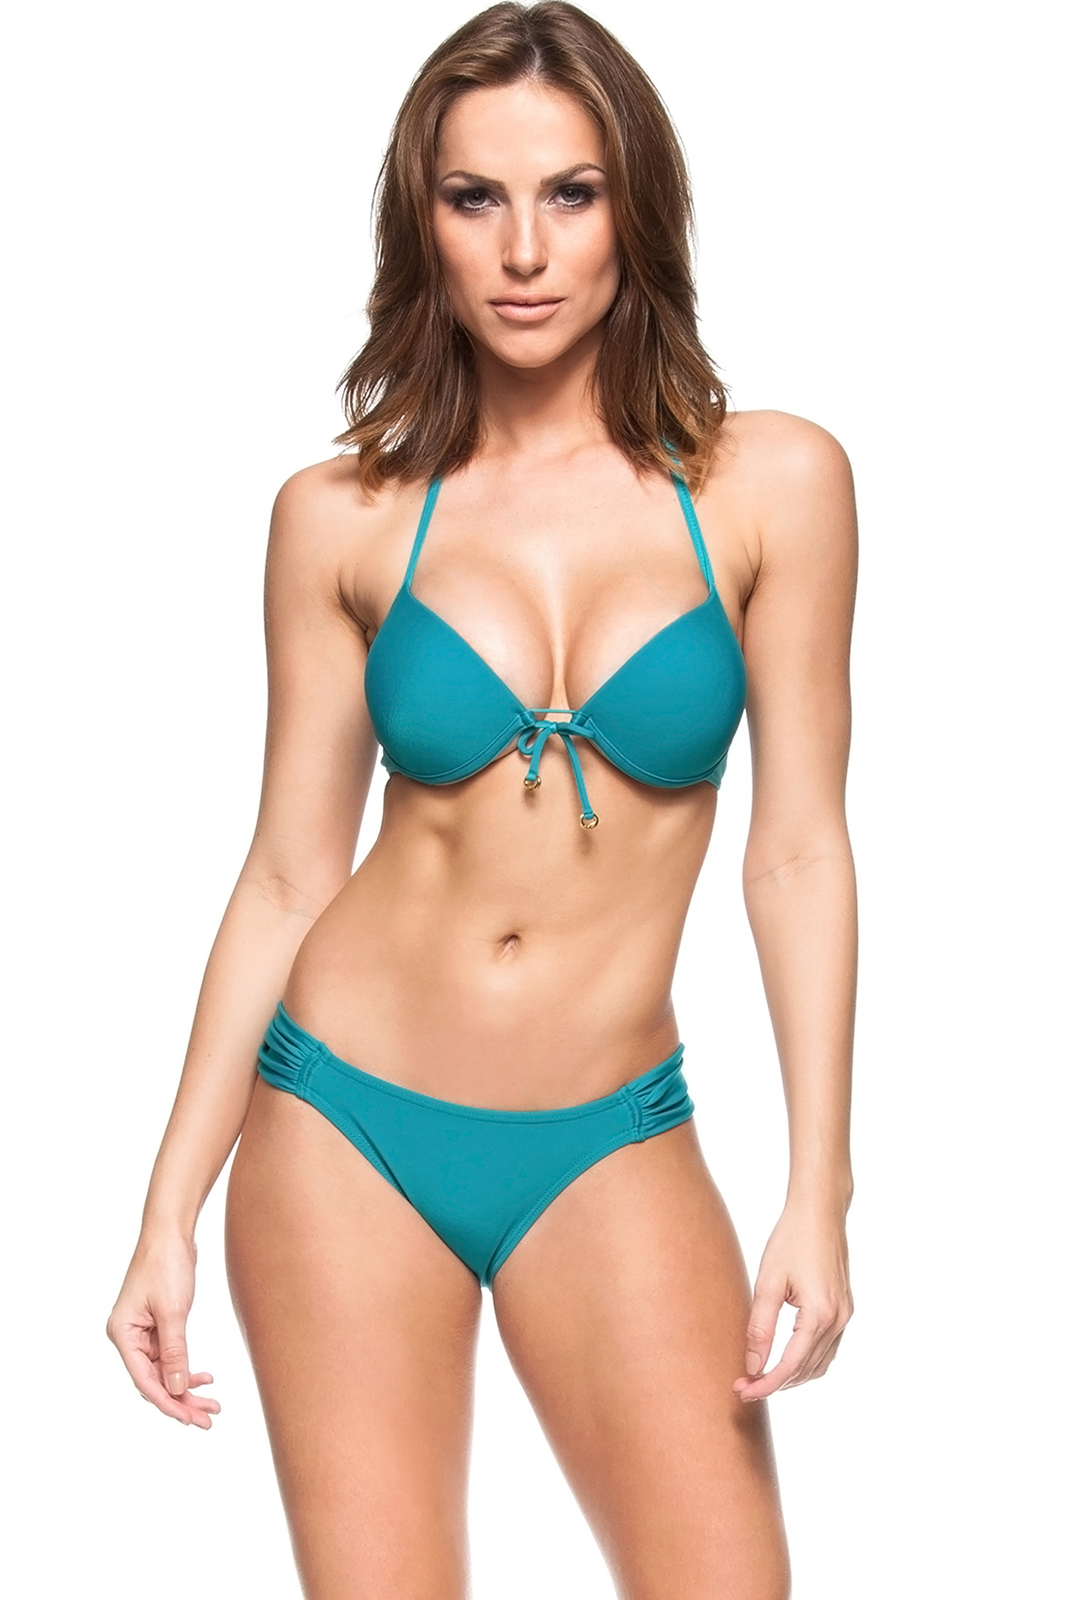 ffd07faa926af Turquoise Blue Push-up Bikini With Underwire - Blue Sky - La Playa